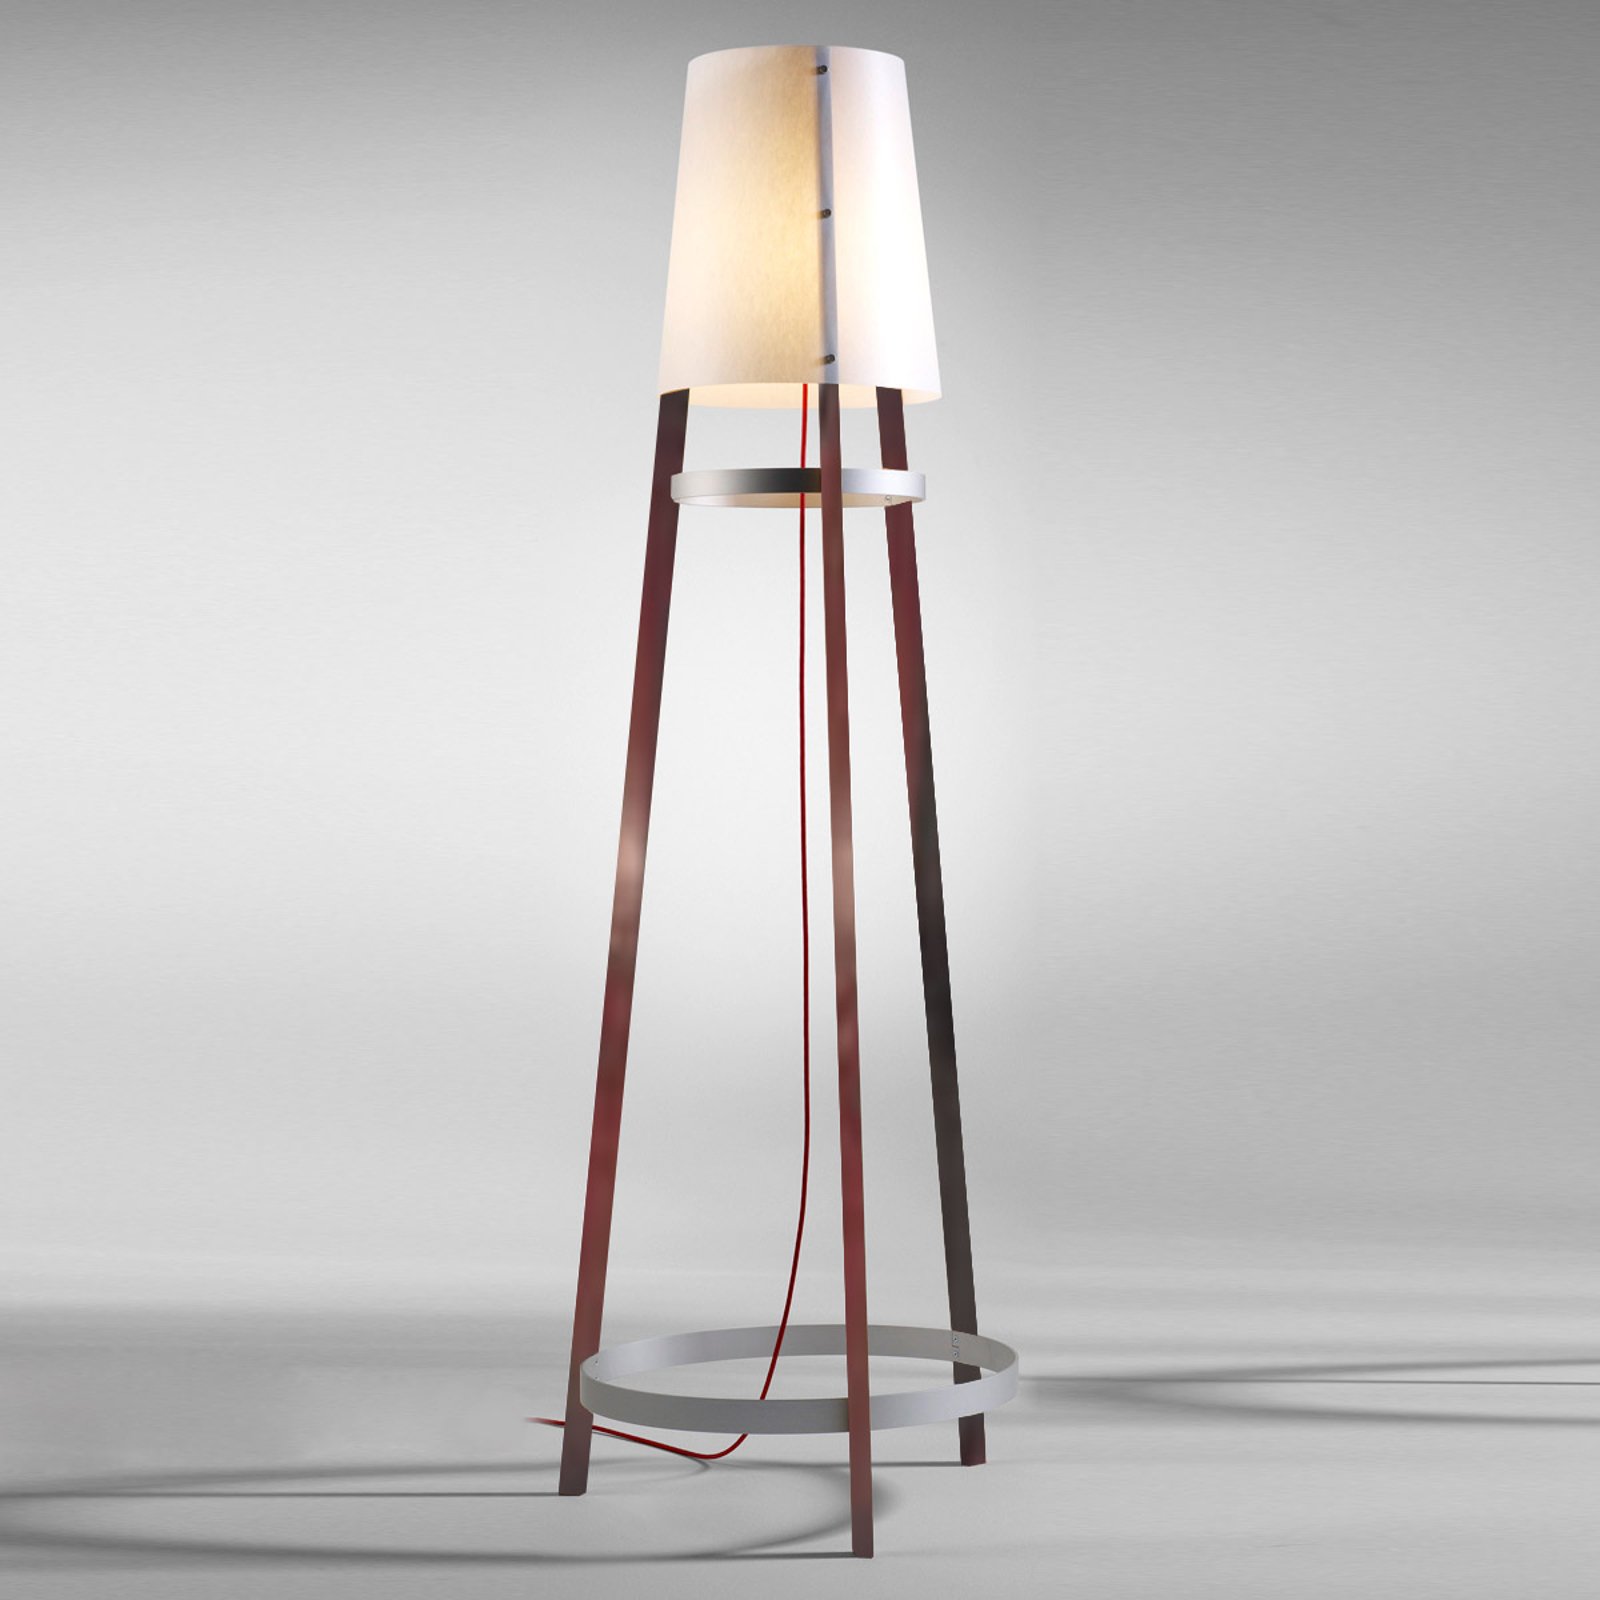 Practical floor lamp Wai Ting with a red cable_2600421_1